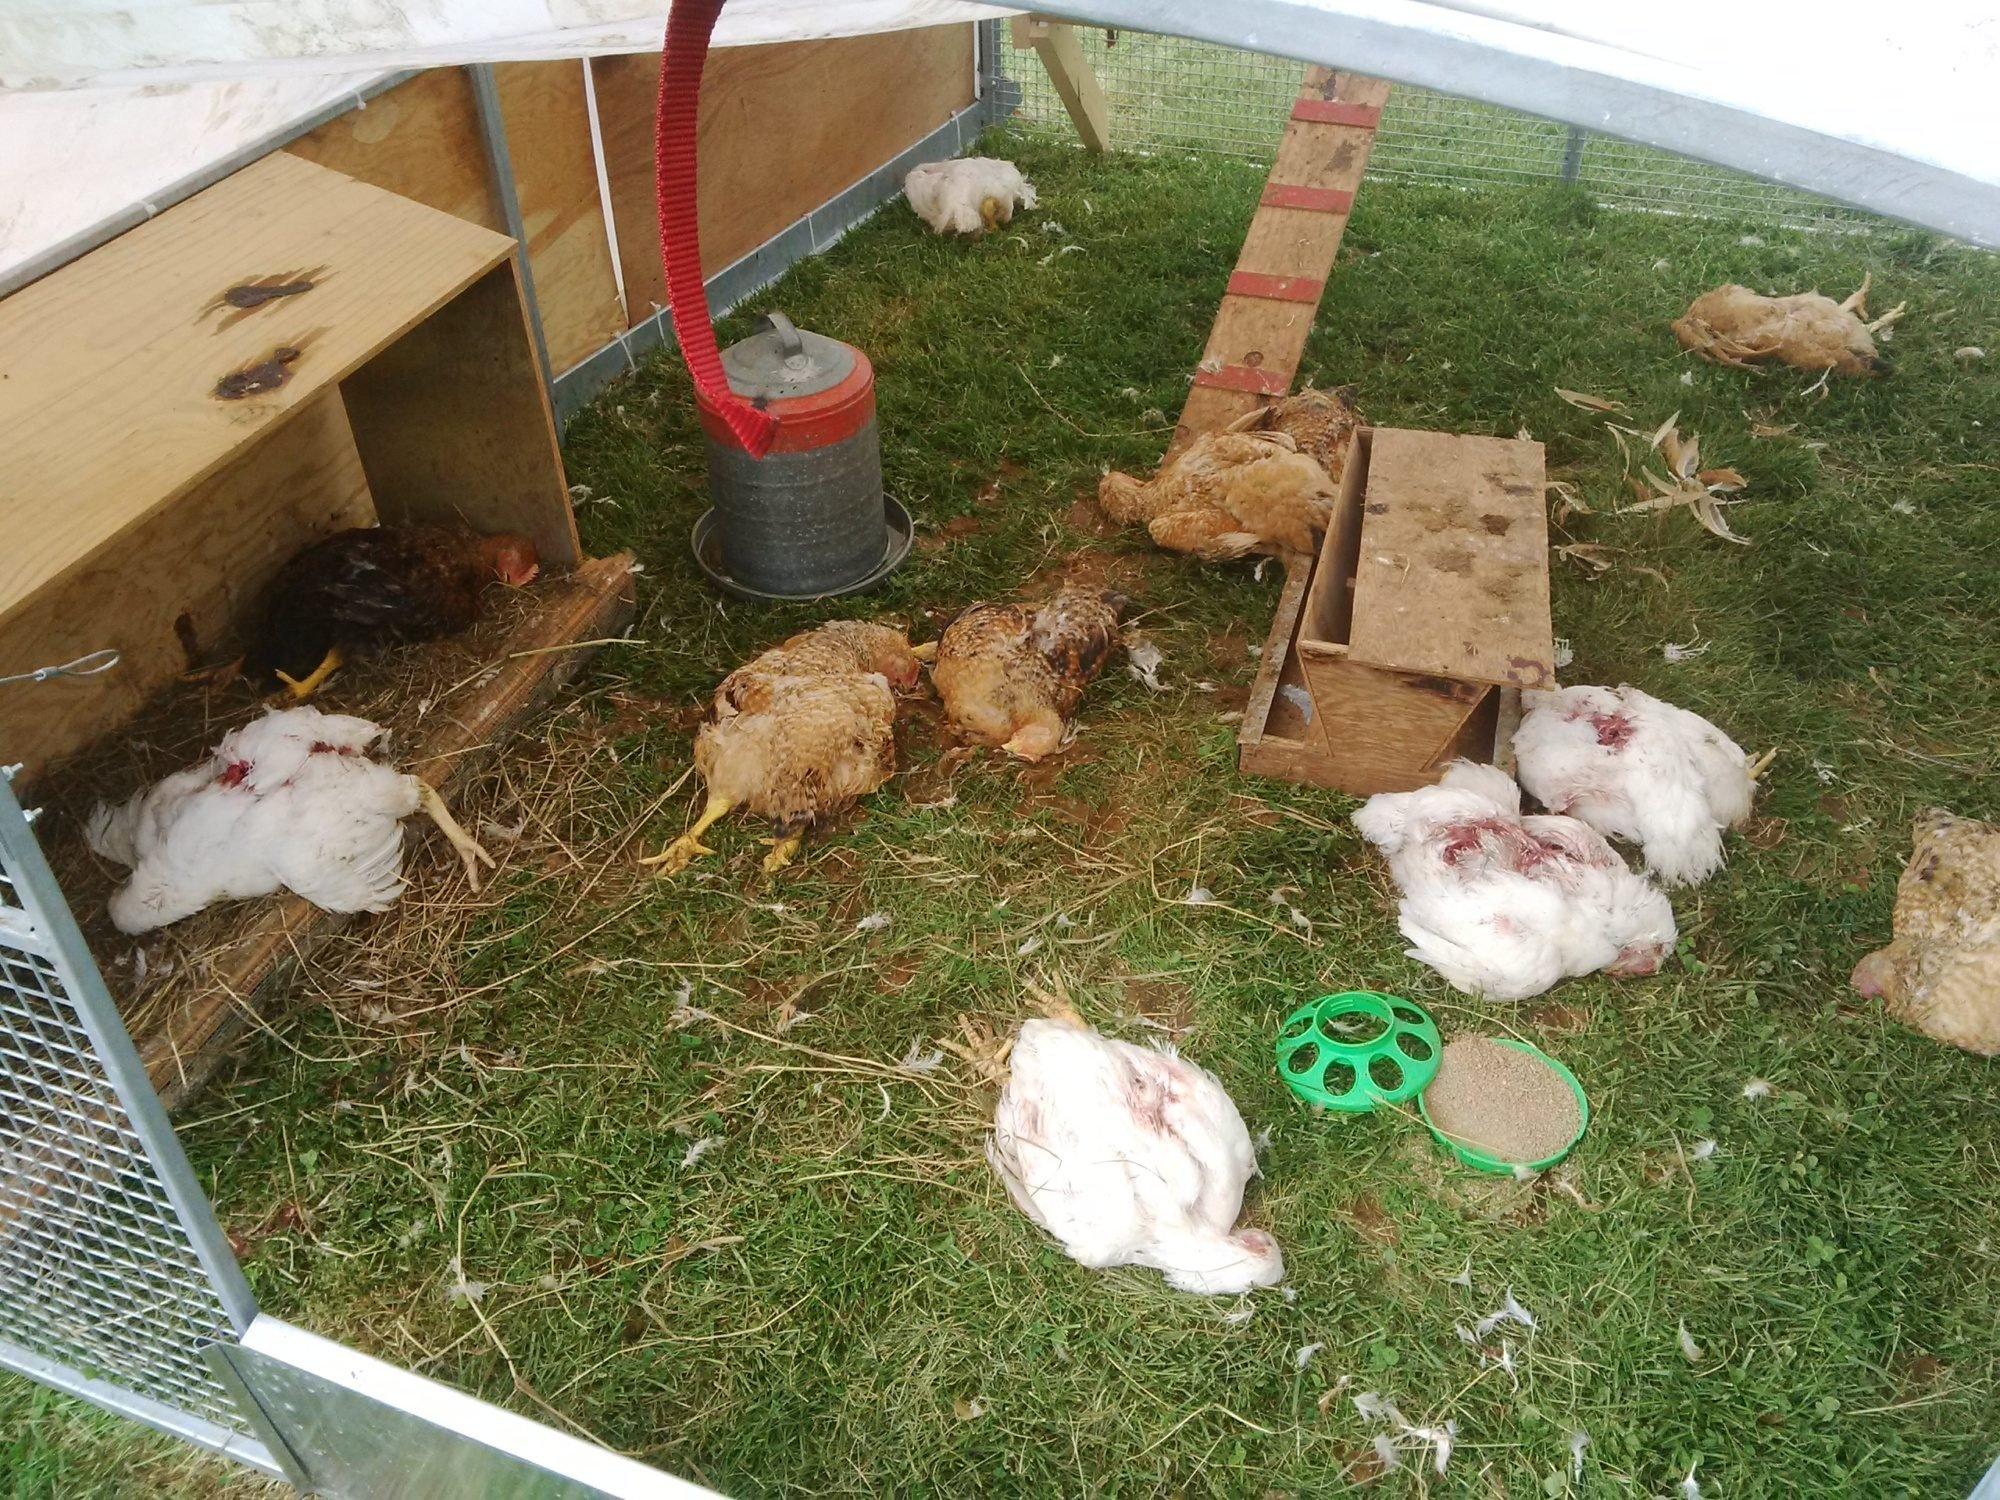 chicken tractors do not offer good protection from predators